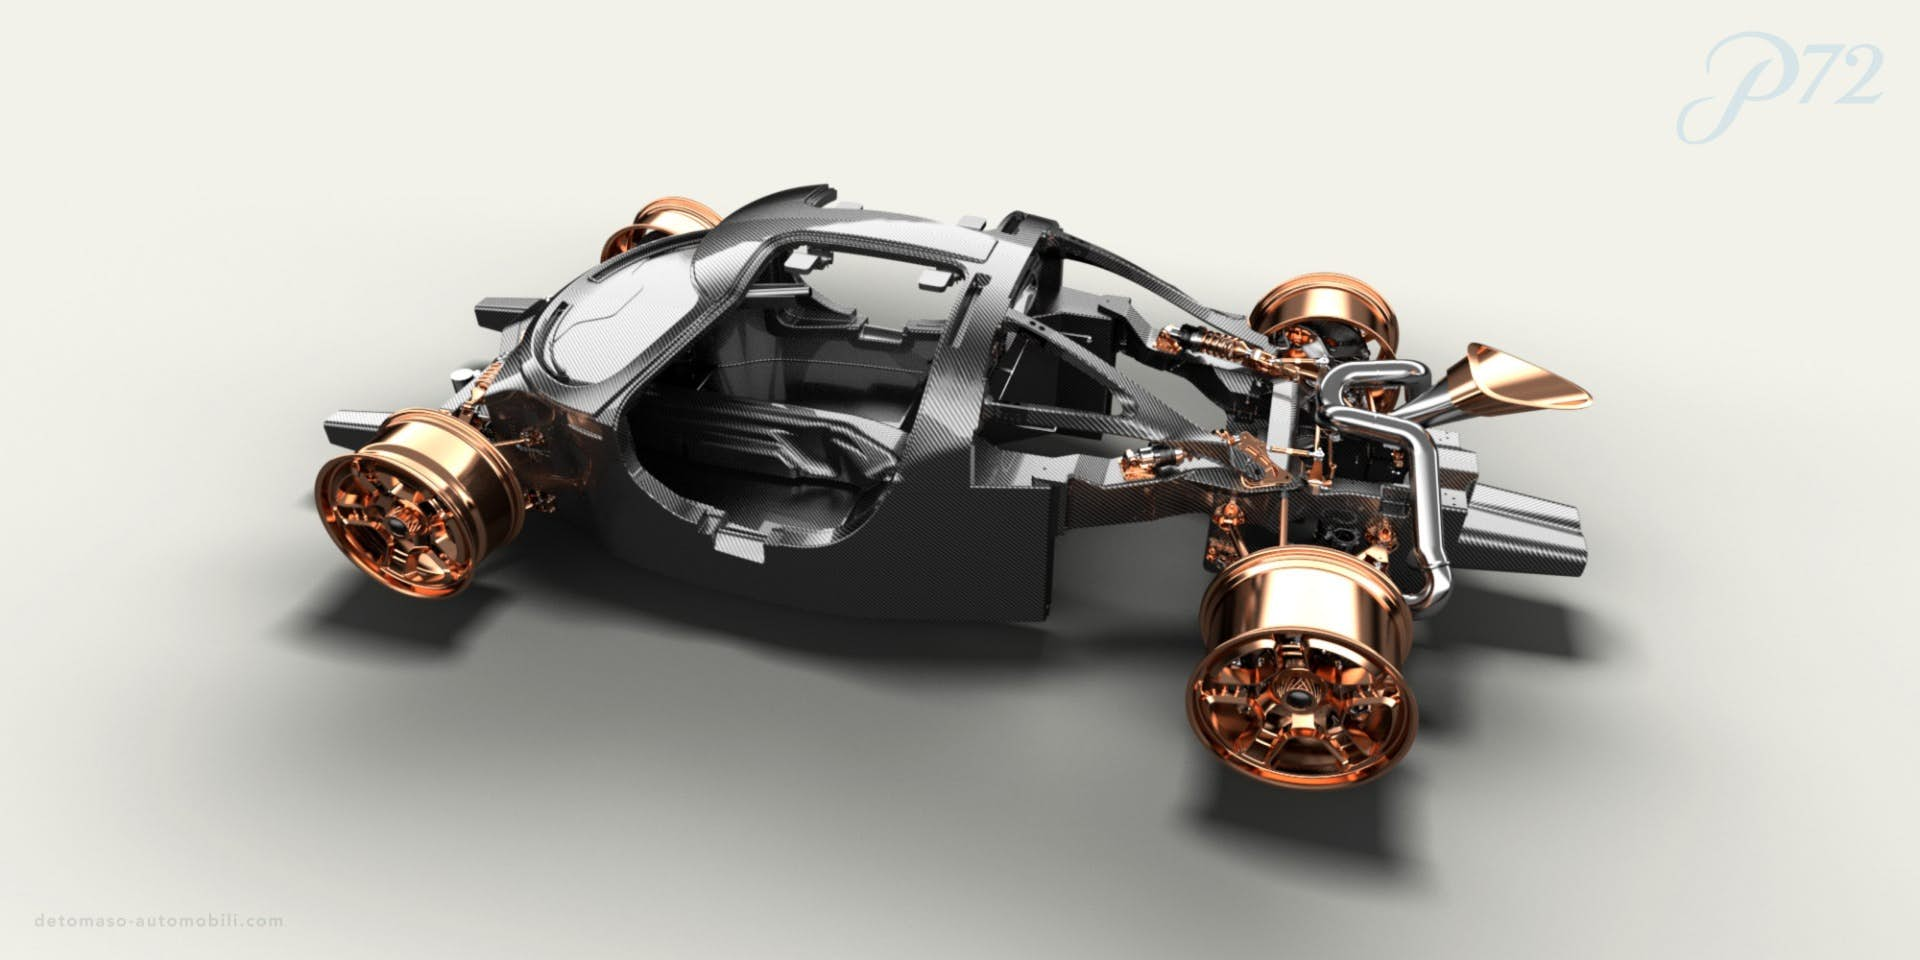 Derived from the chassis of the Apollo Intense Emotione